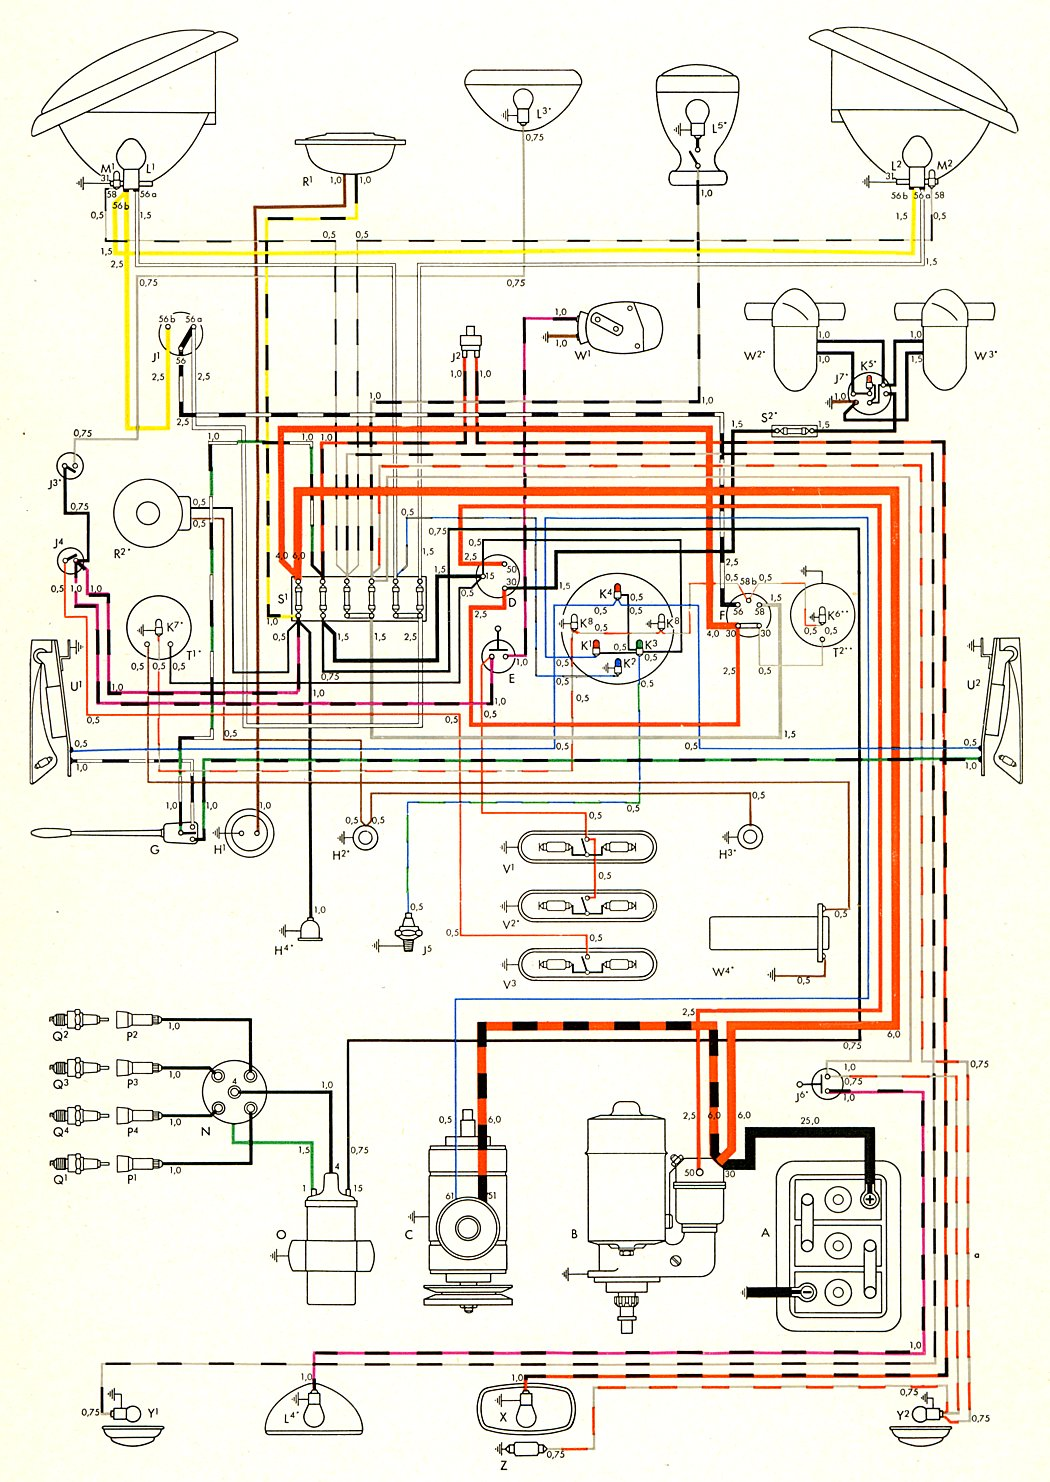 bus_nov57 1957 bus wiring diagram thegoldenbug com 1963 vw wiring diagram at alyssarenee.co